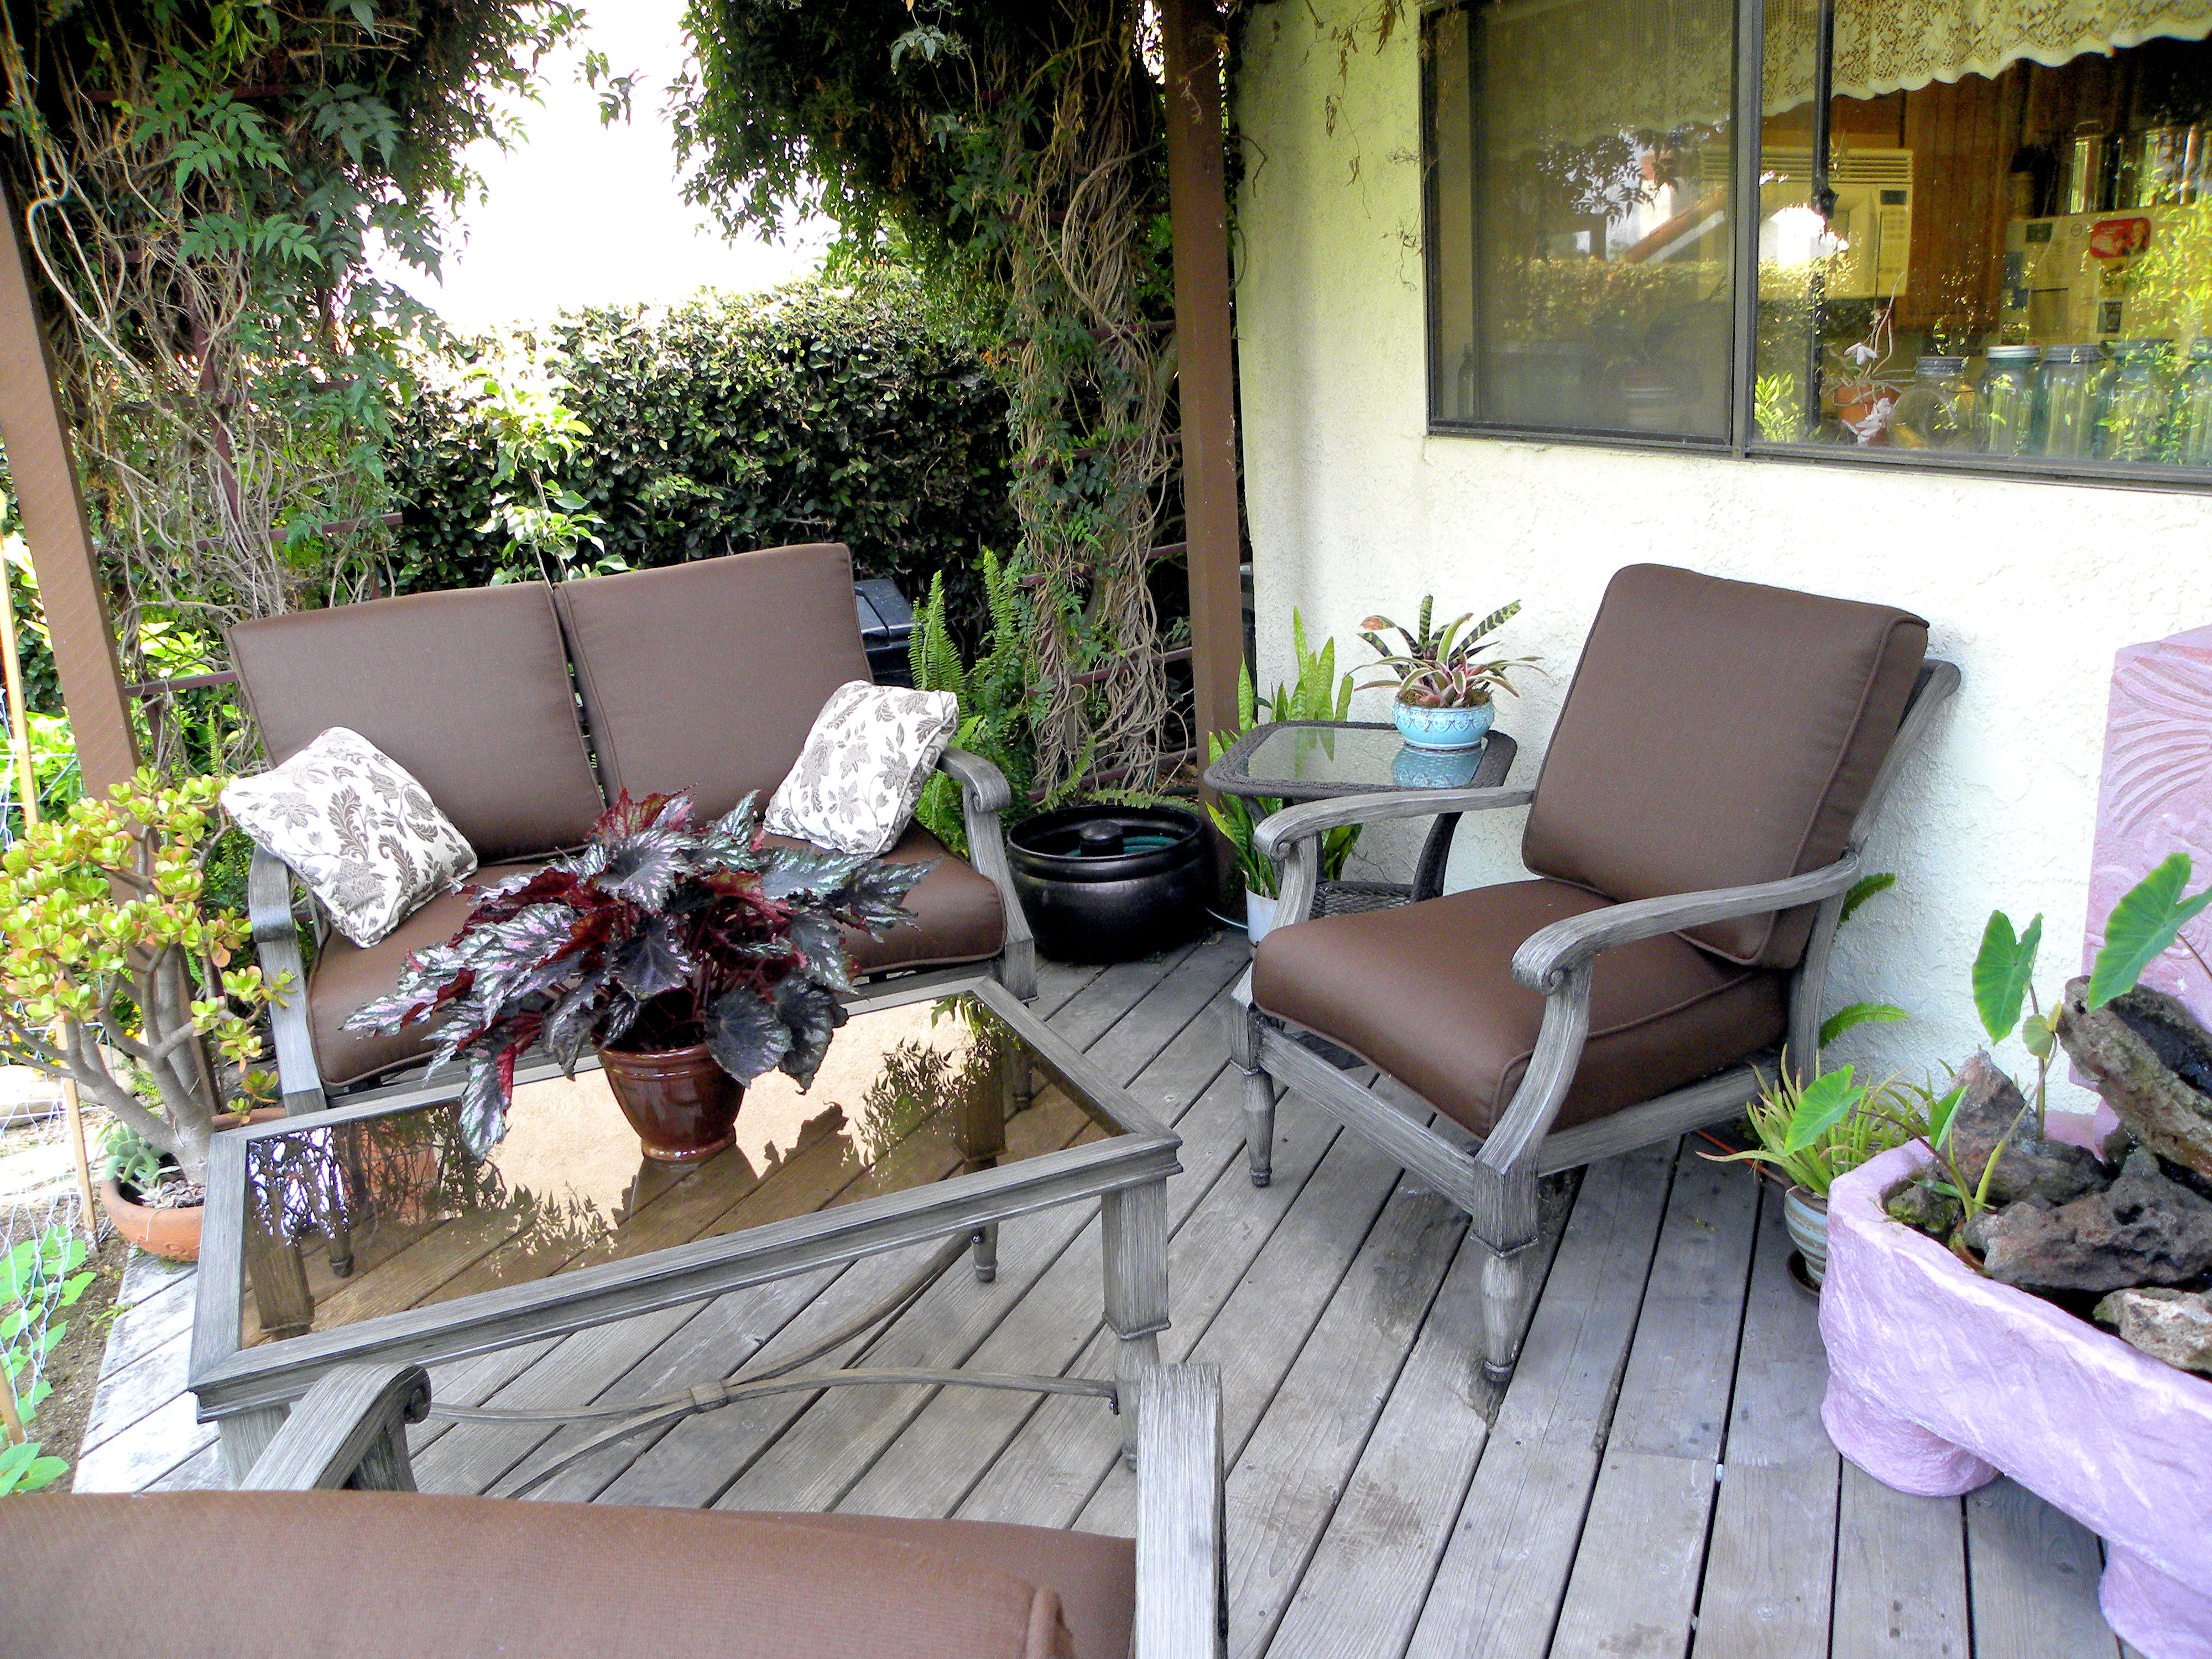 Best Of orchard Supply Patio Furniture